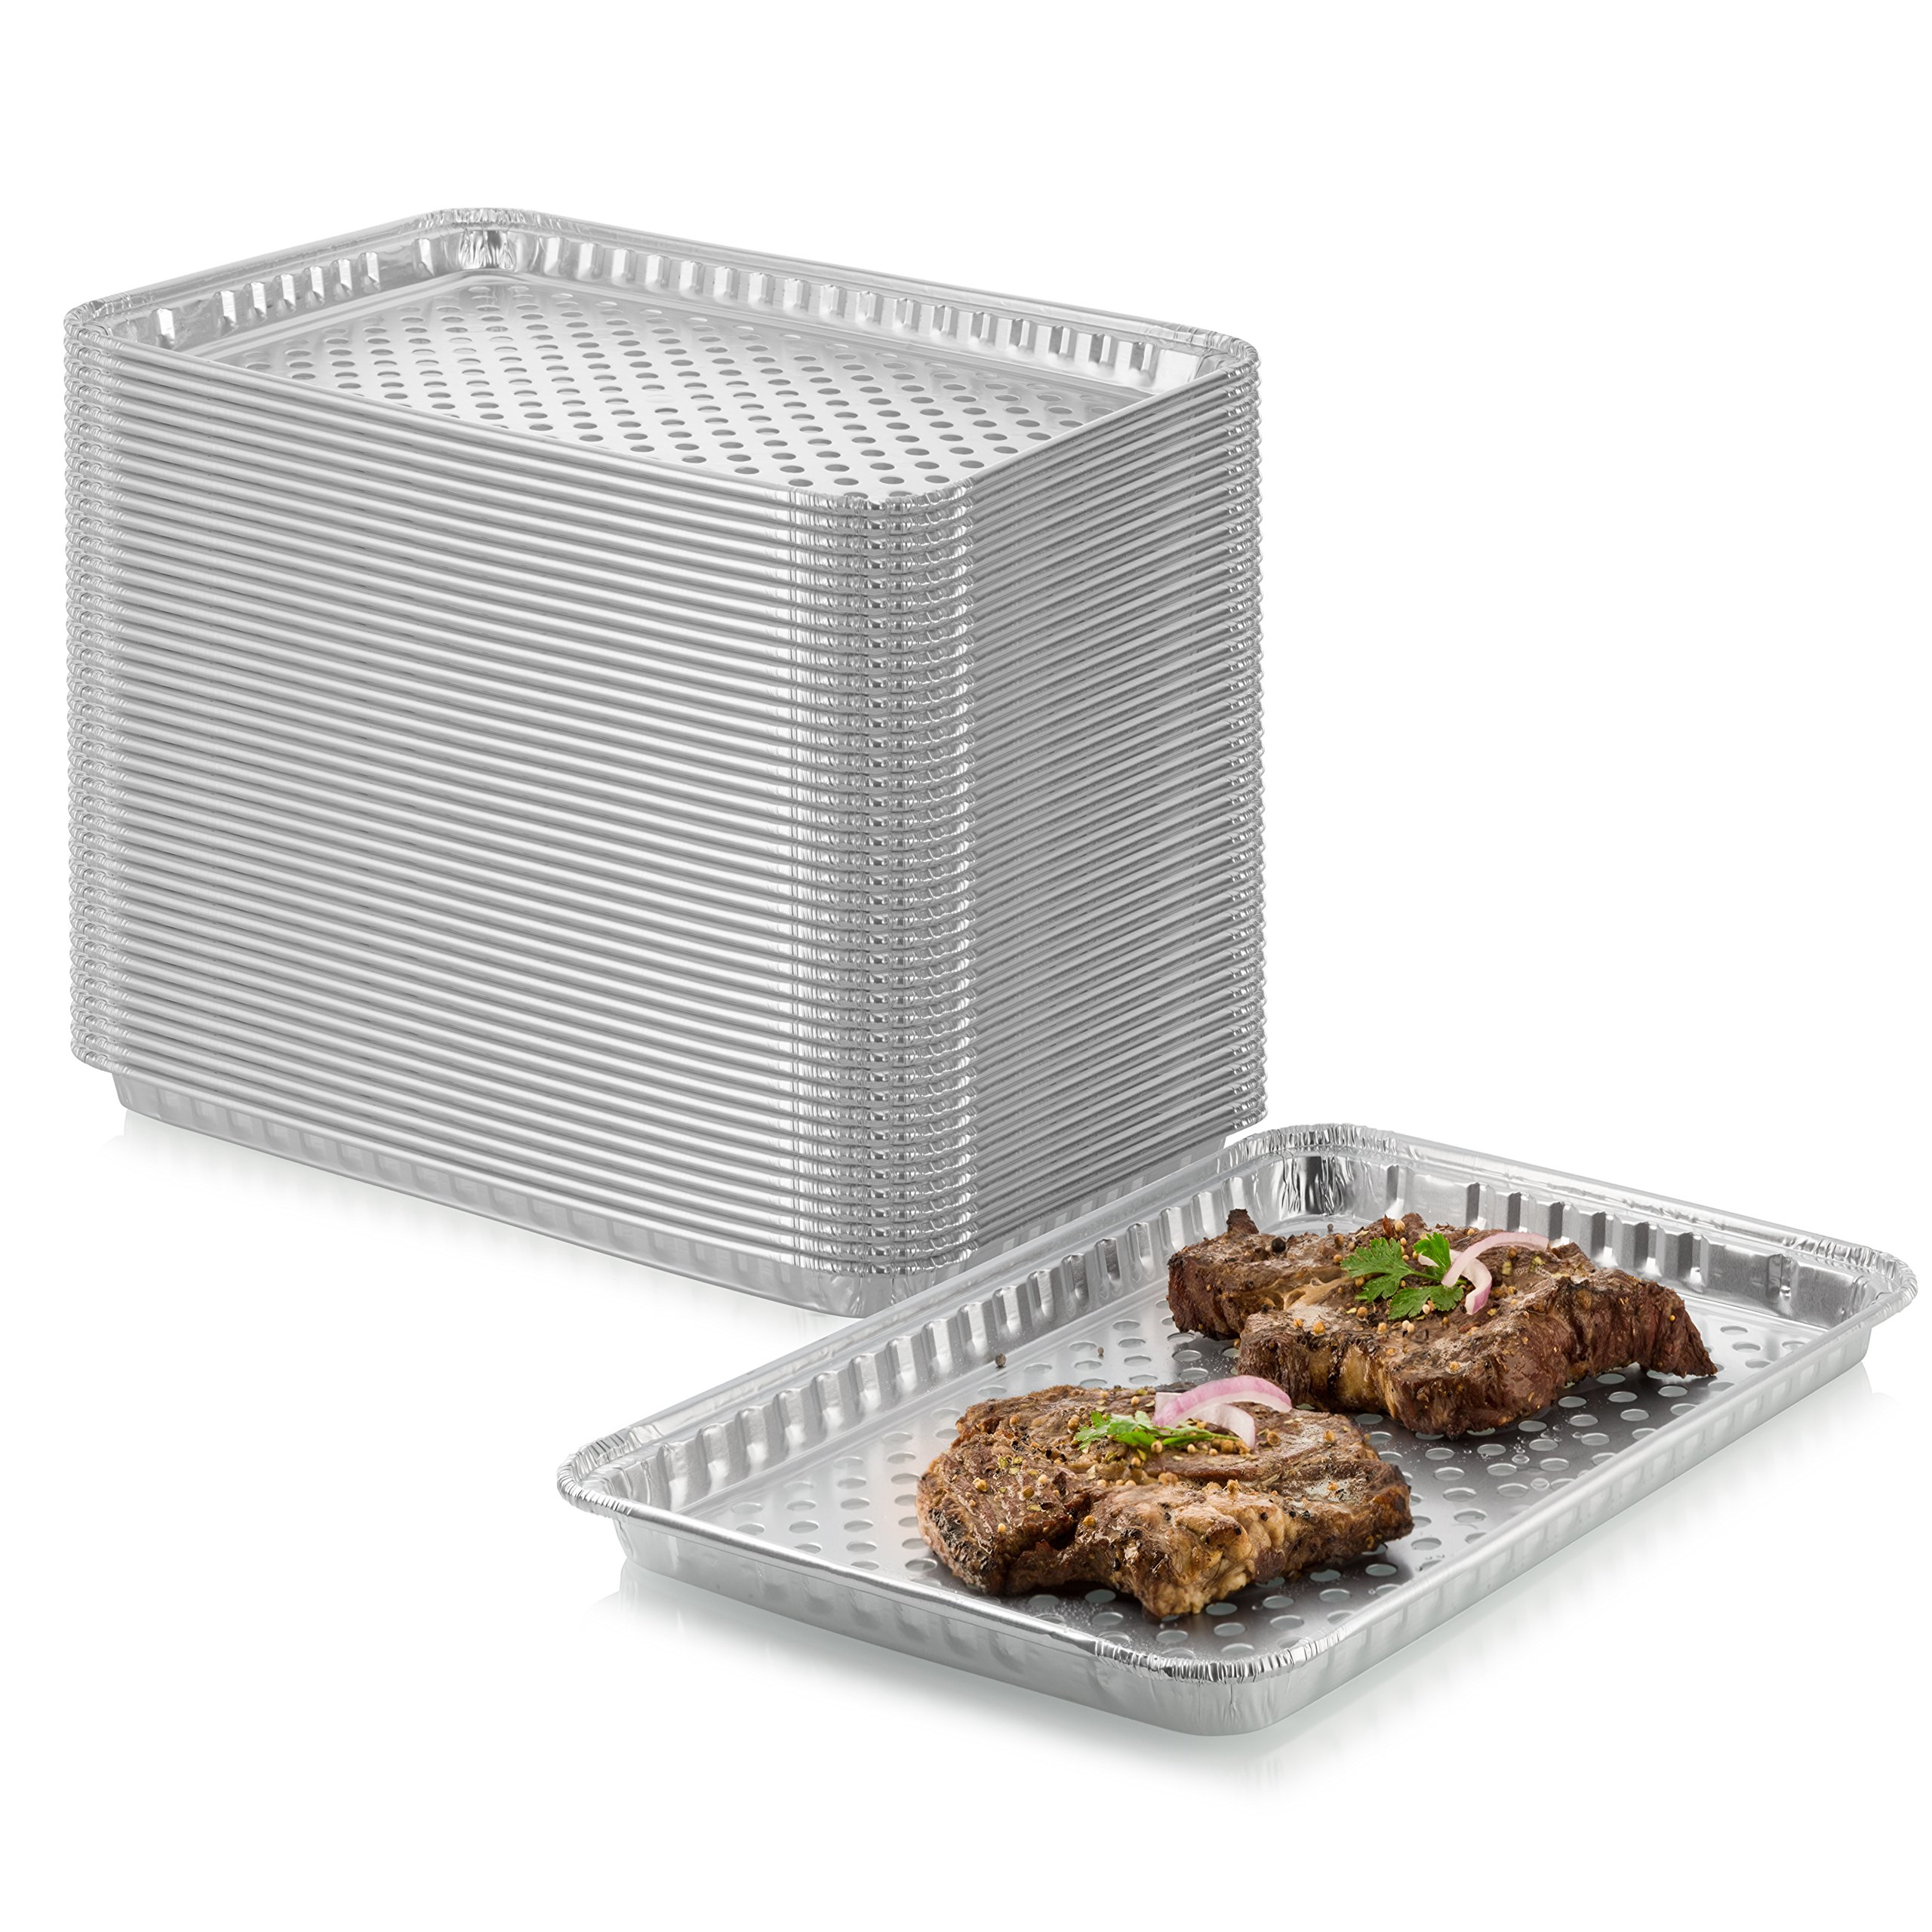 24-Pack Disposable Aluminum Foil BBQ Grill Topper Pan - Prevents Food from Falling into the Grill or Sticking to the Grate - No Clean Up Required - Perfect for Camping and Outdoor Use - 15'' x10'' x1.5''